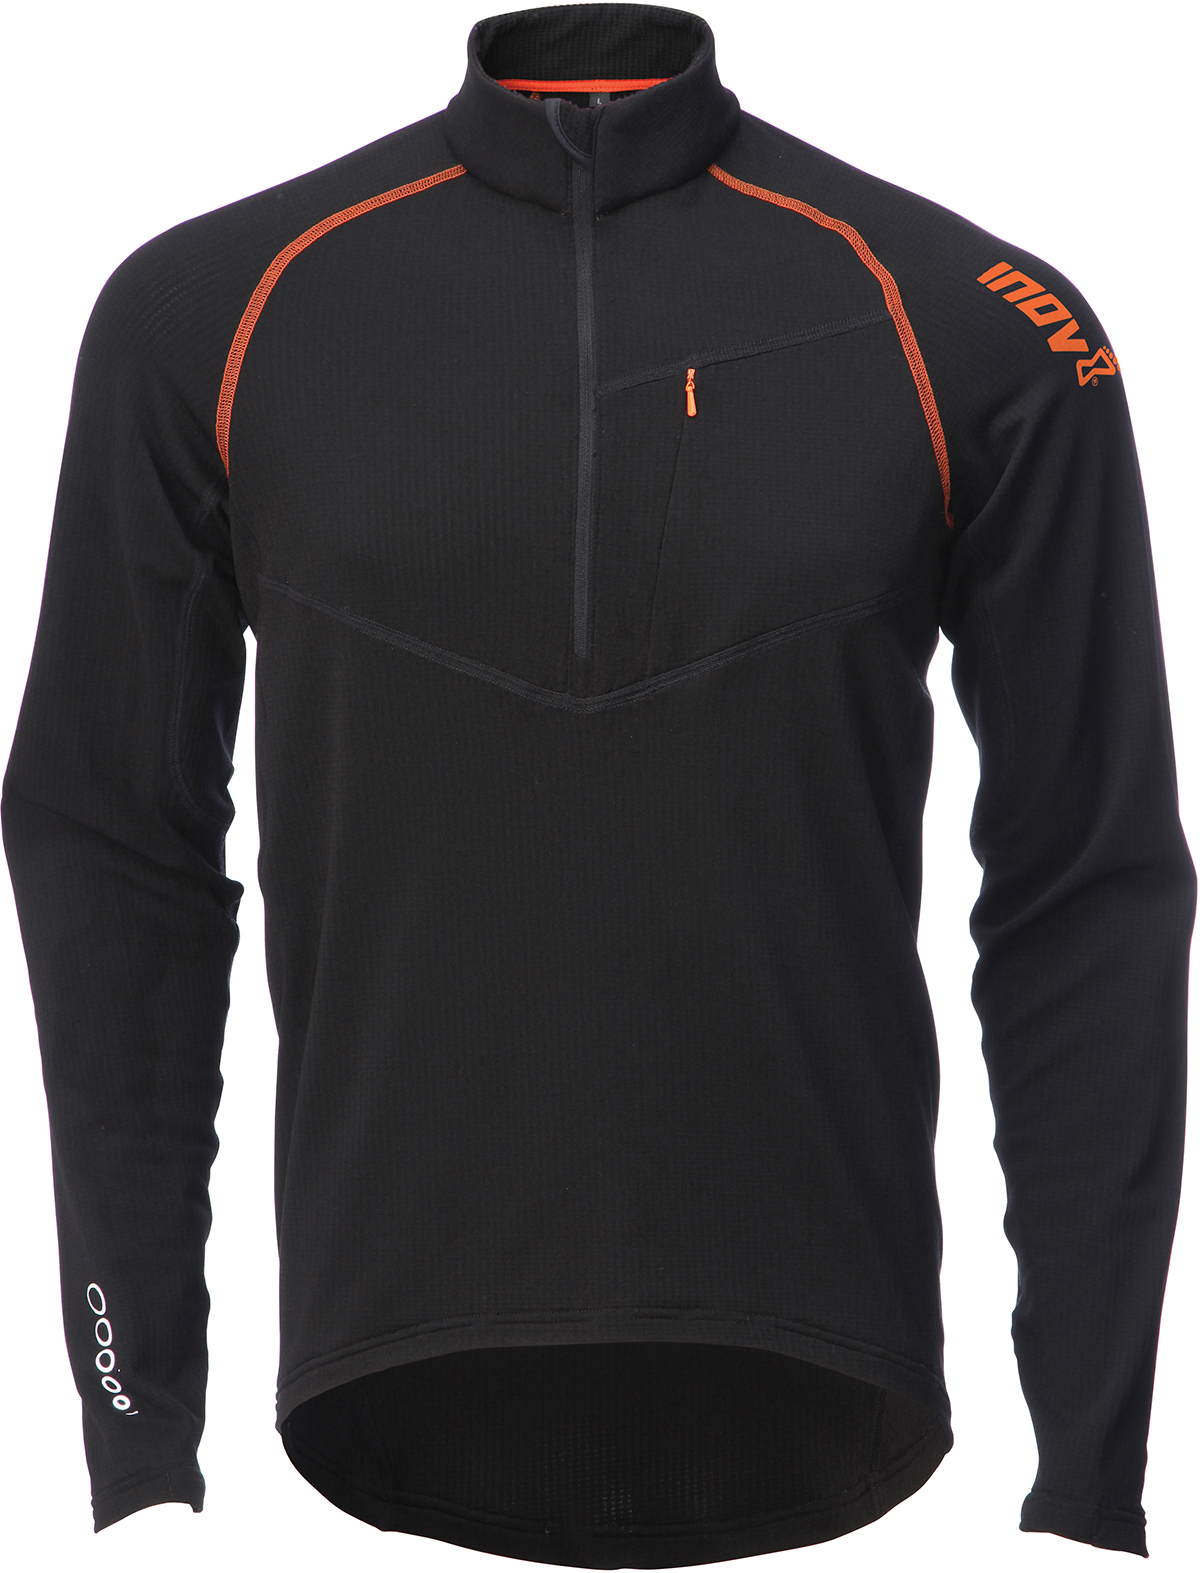 Inov-8 Race Elite 185 Thermomid Top - AW13